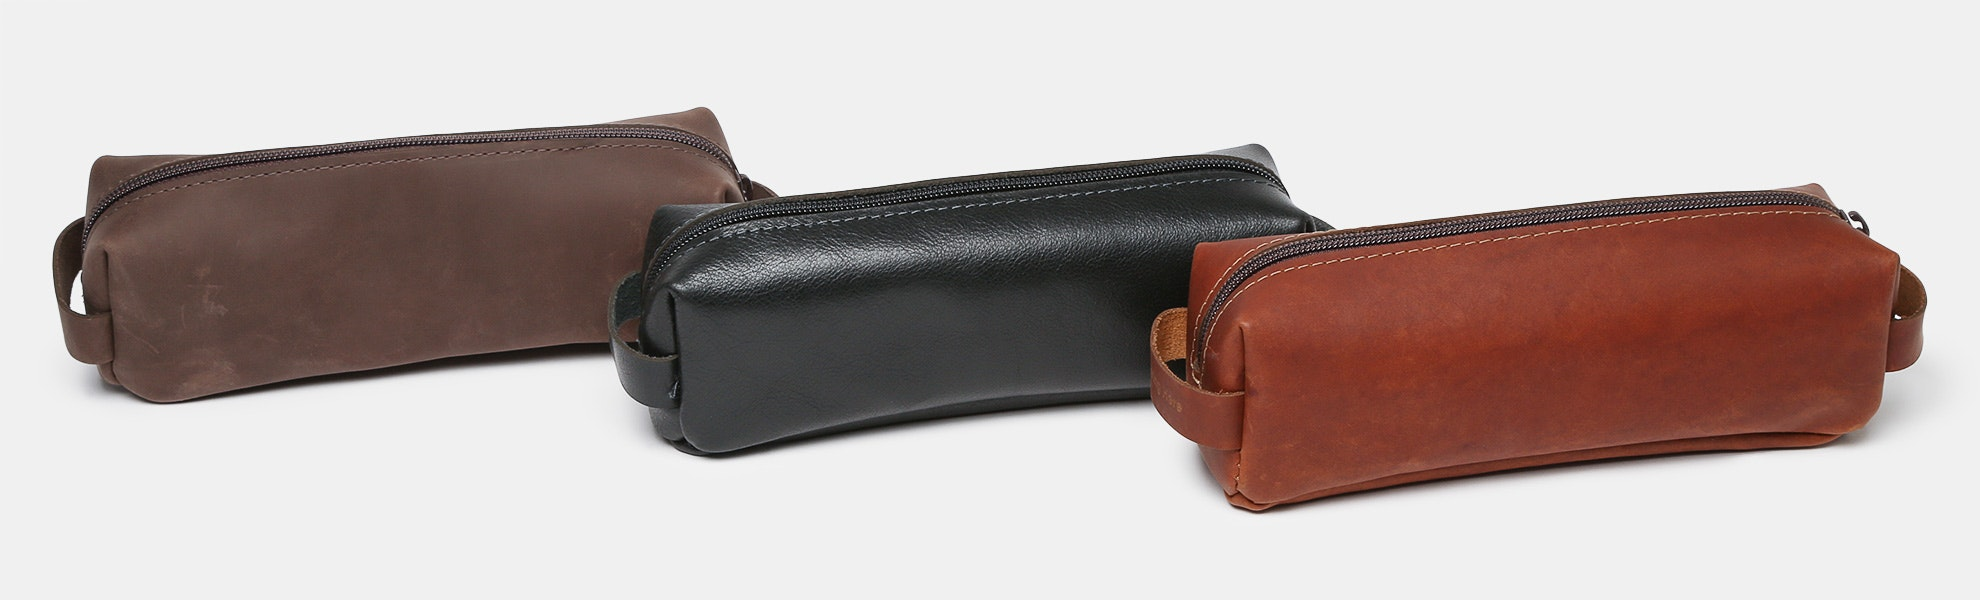 Allegory Leather Pen Case